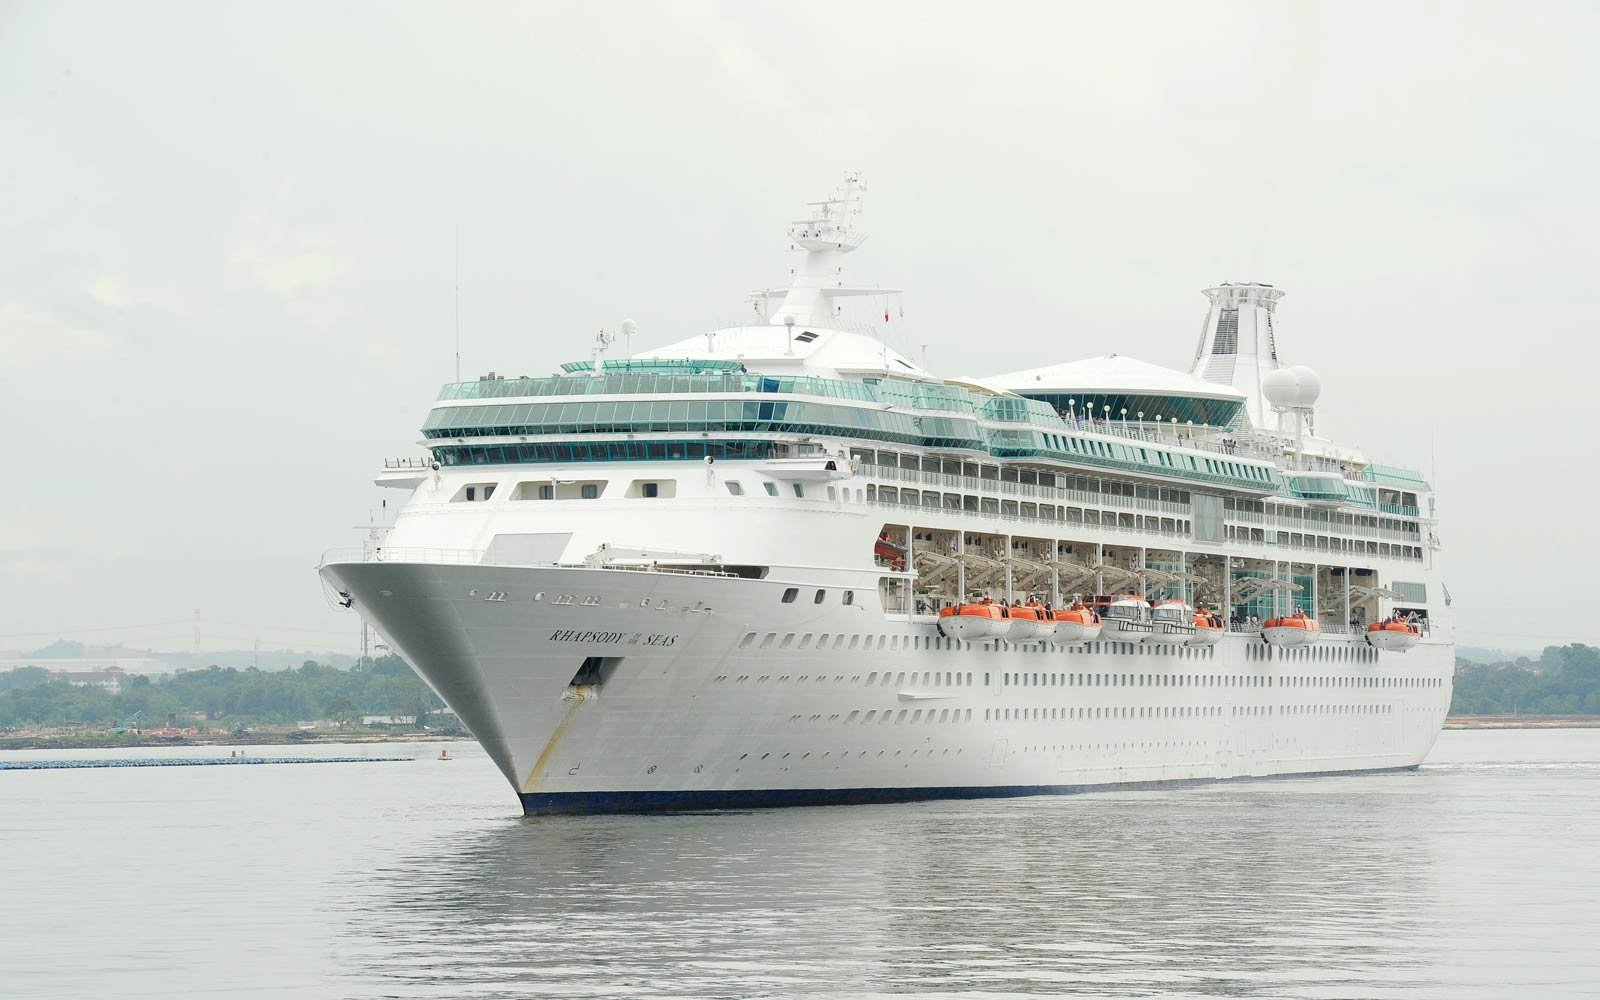 Five Things to Know About Royal Caribbean International's Rhapsody of the Seas Cruise Ship